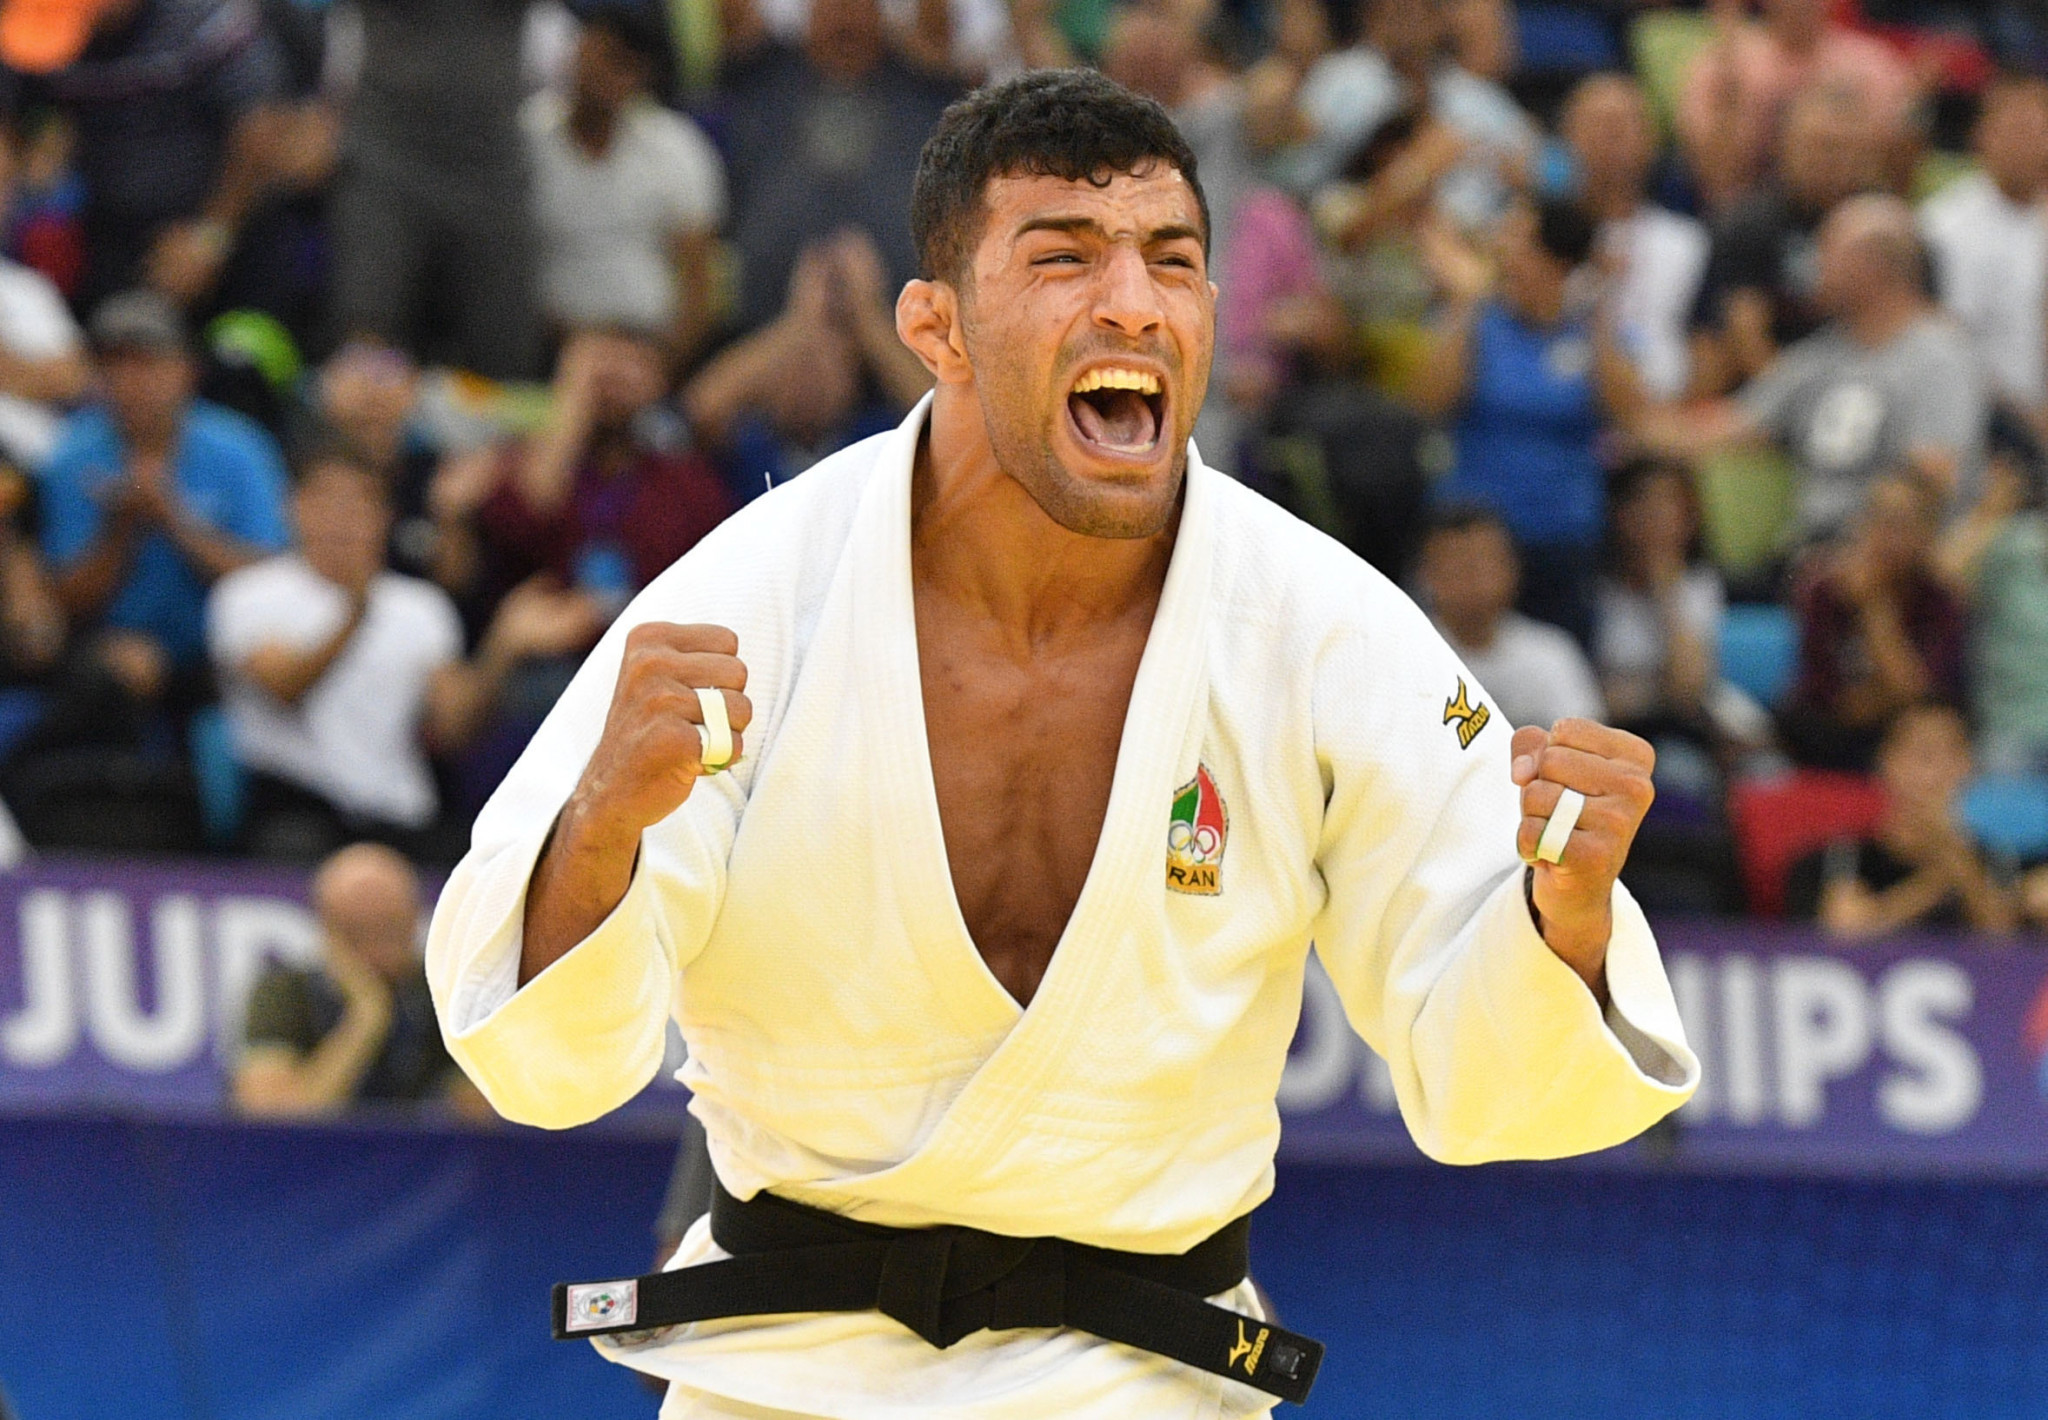 Iran is trying to intimidate its former world champion Saeid Mollaei ahead of a crucial case at the Court of Arbitration for Sport where they are appealing against an International Judo Federation suspension ©Getty Images